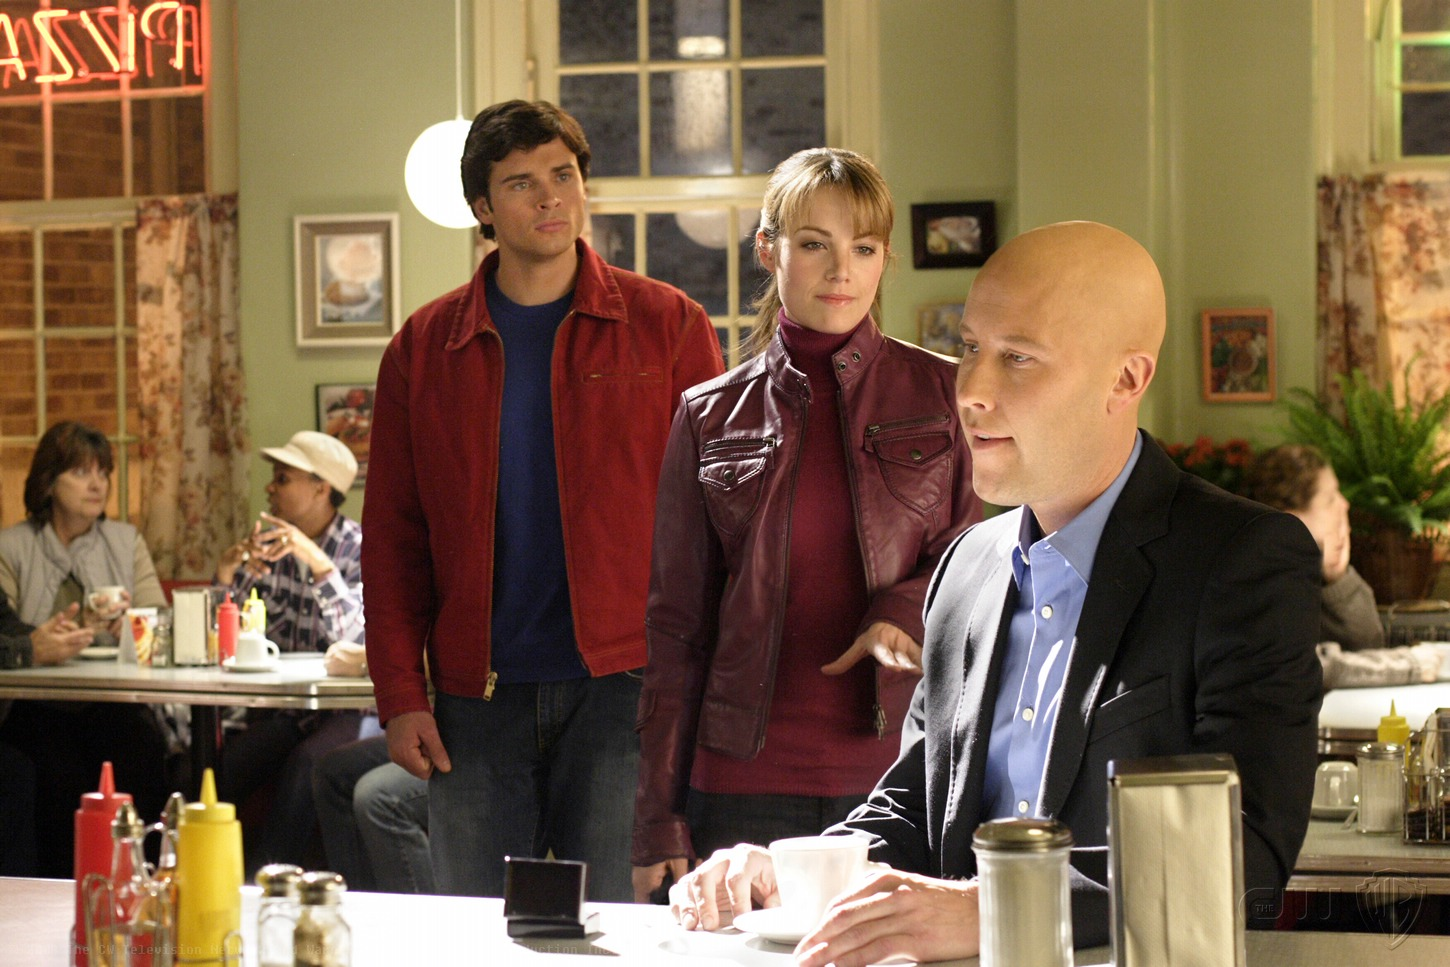 Smallville (TV Series) Episode: Fracture